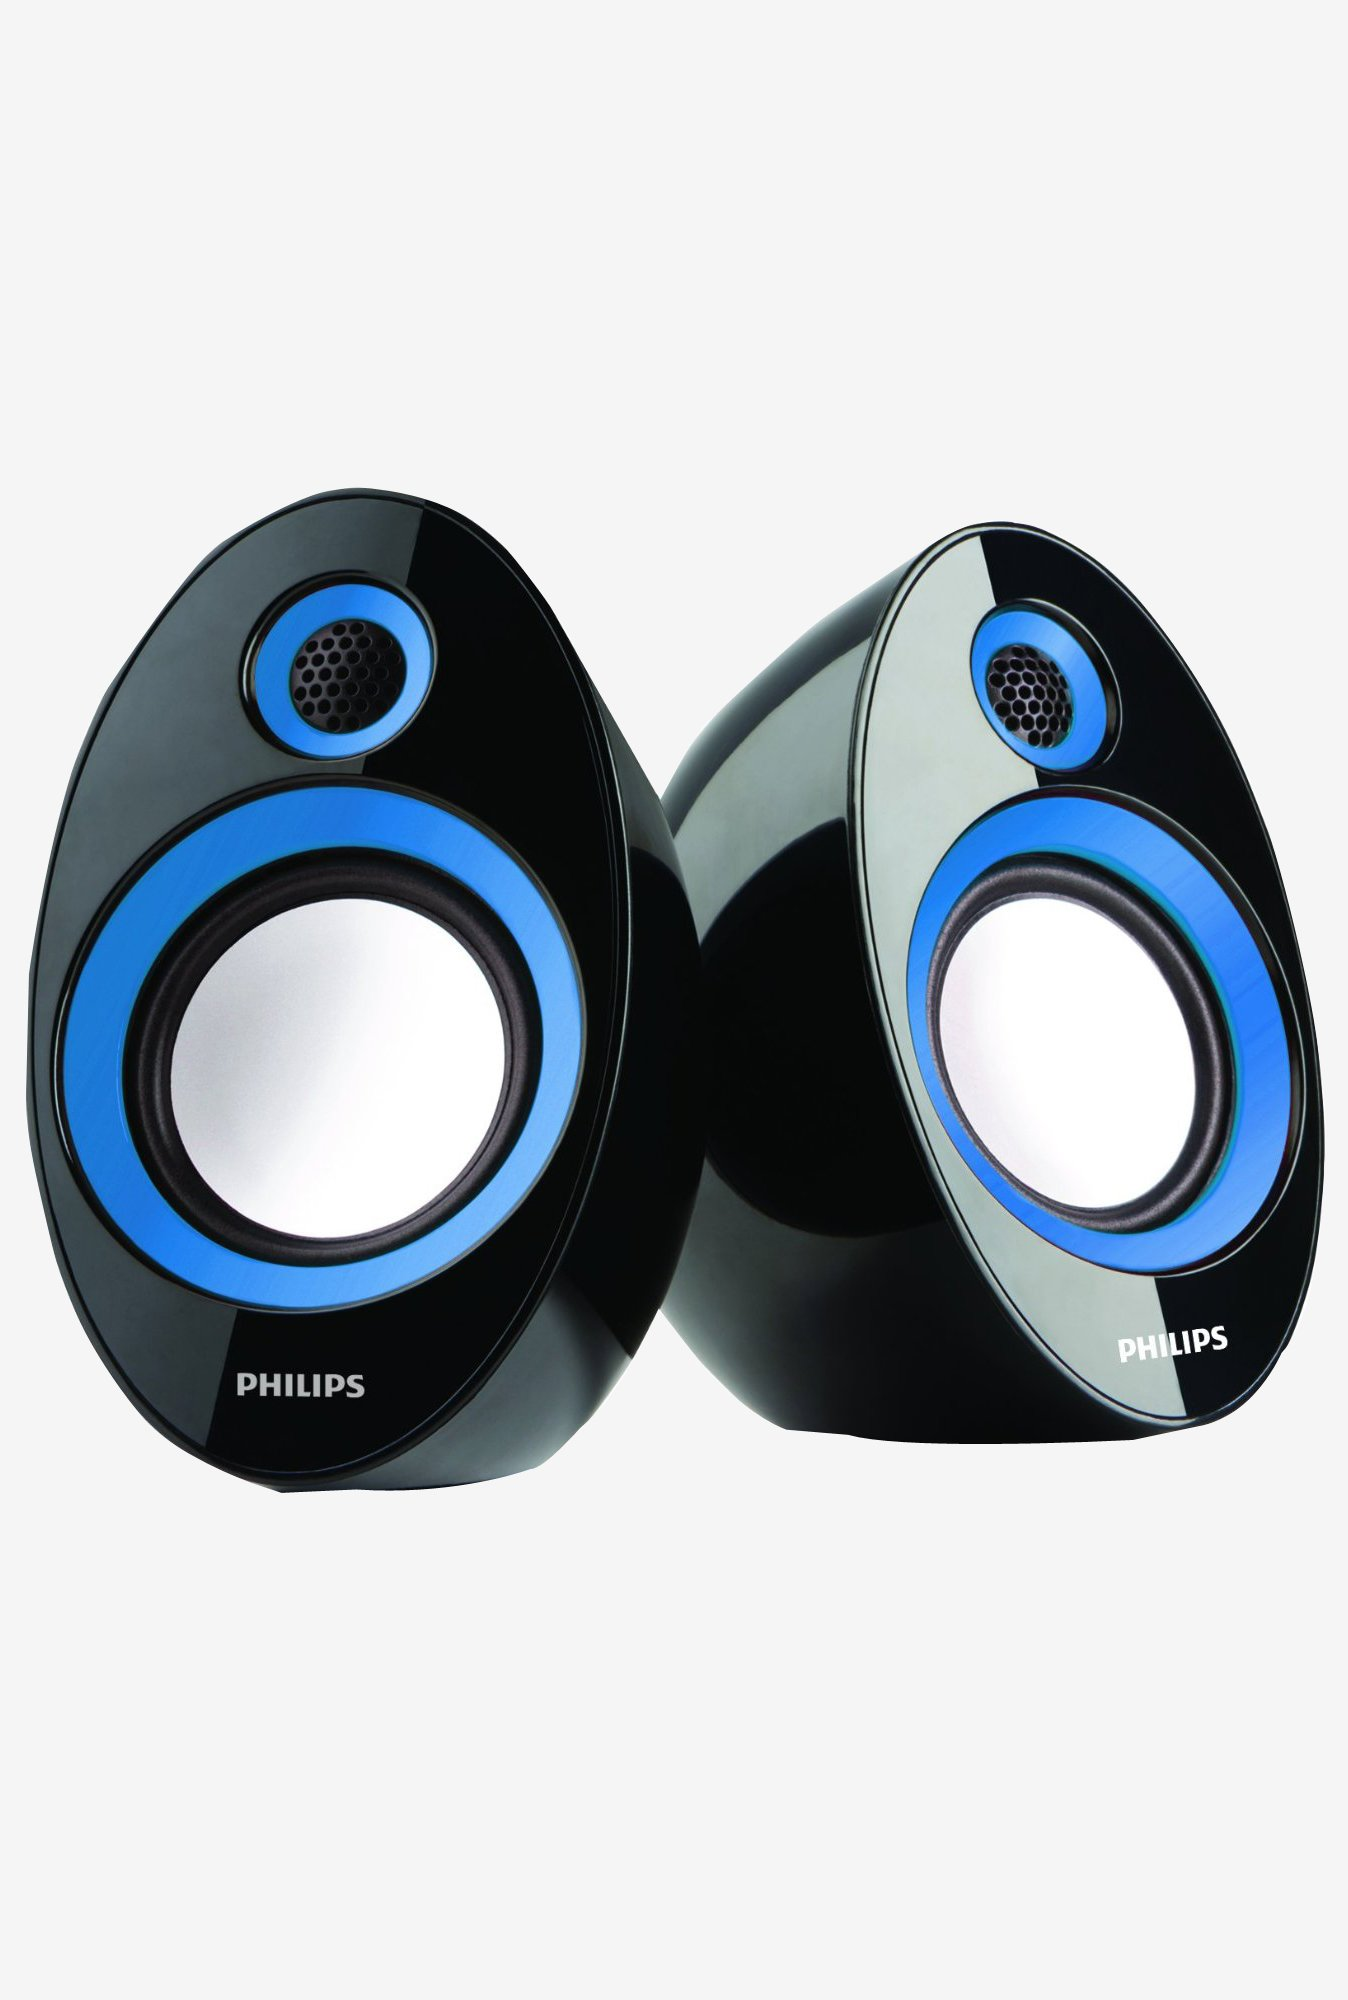 Philips SPA-60B/94 2.0 Speaker with USB Plug (Blue)